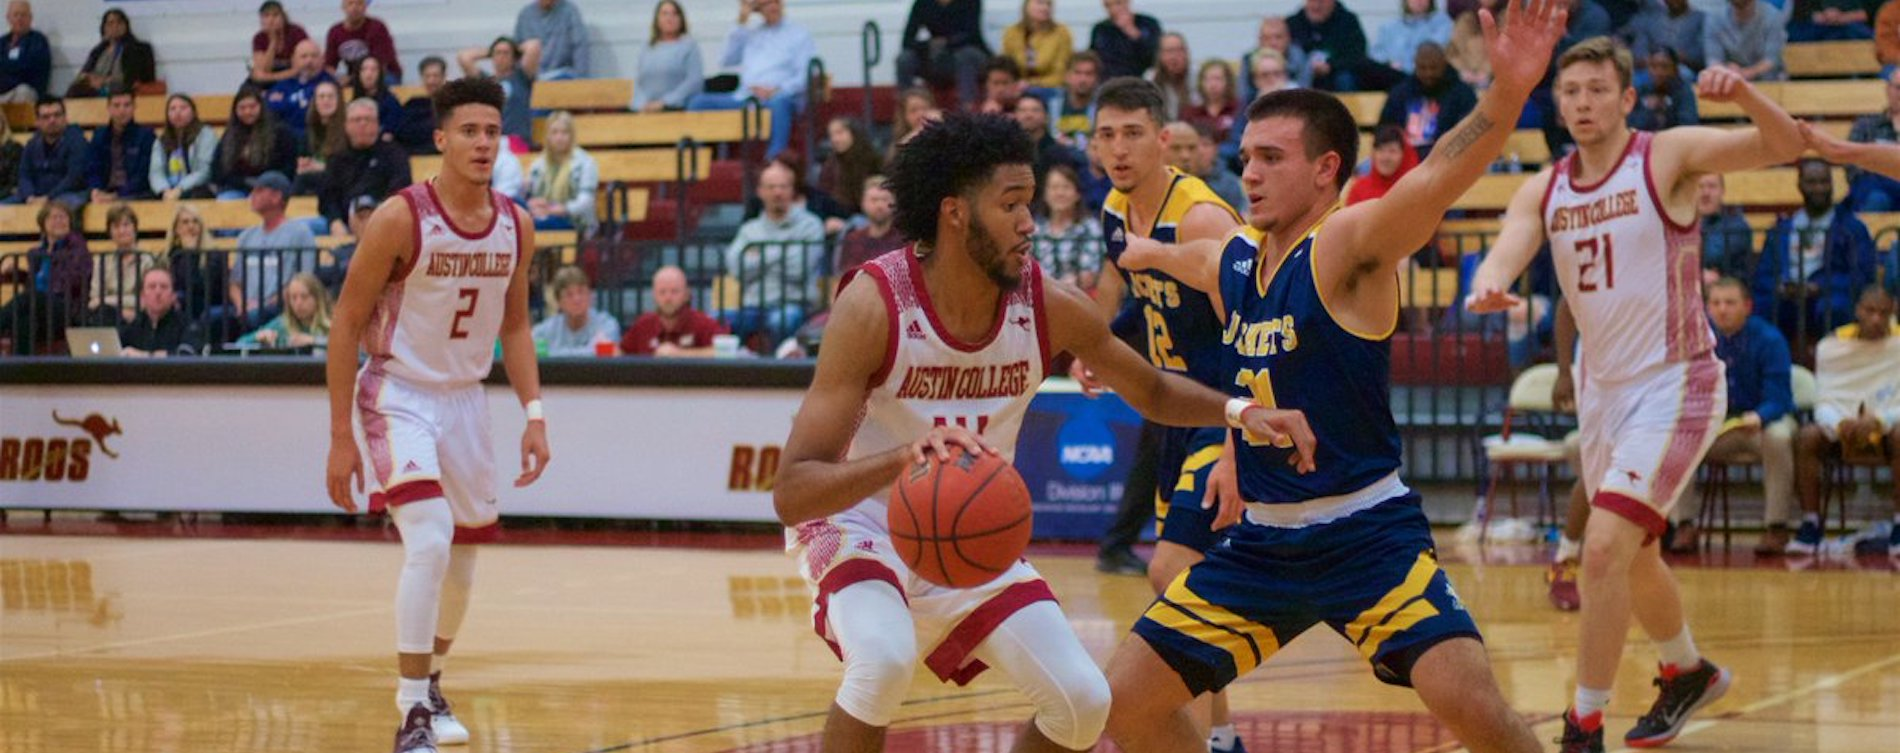 Mercadel Named SCAC Player of the Week